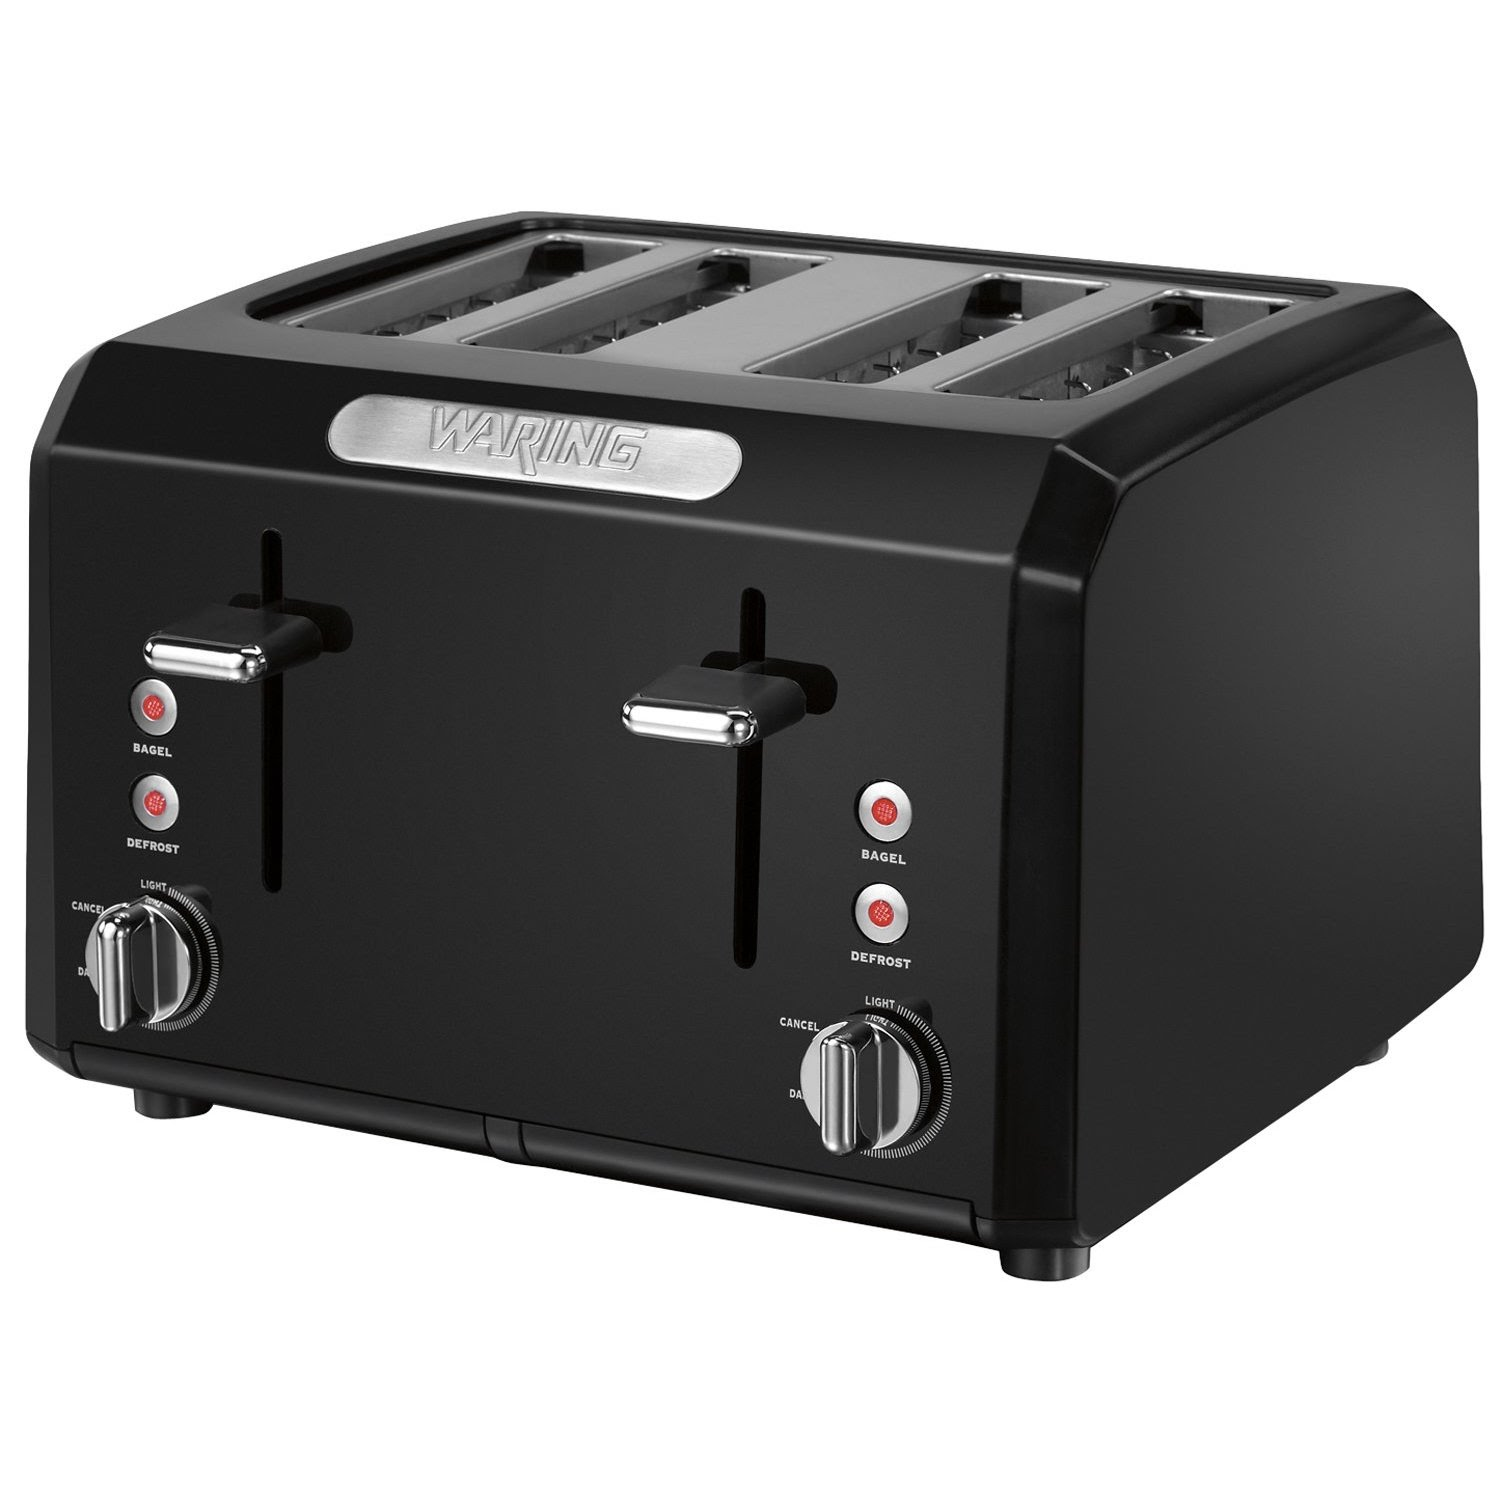 Best Toaster In The World 4 Slice Toaster